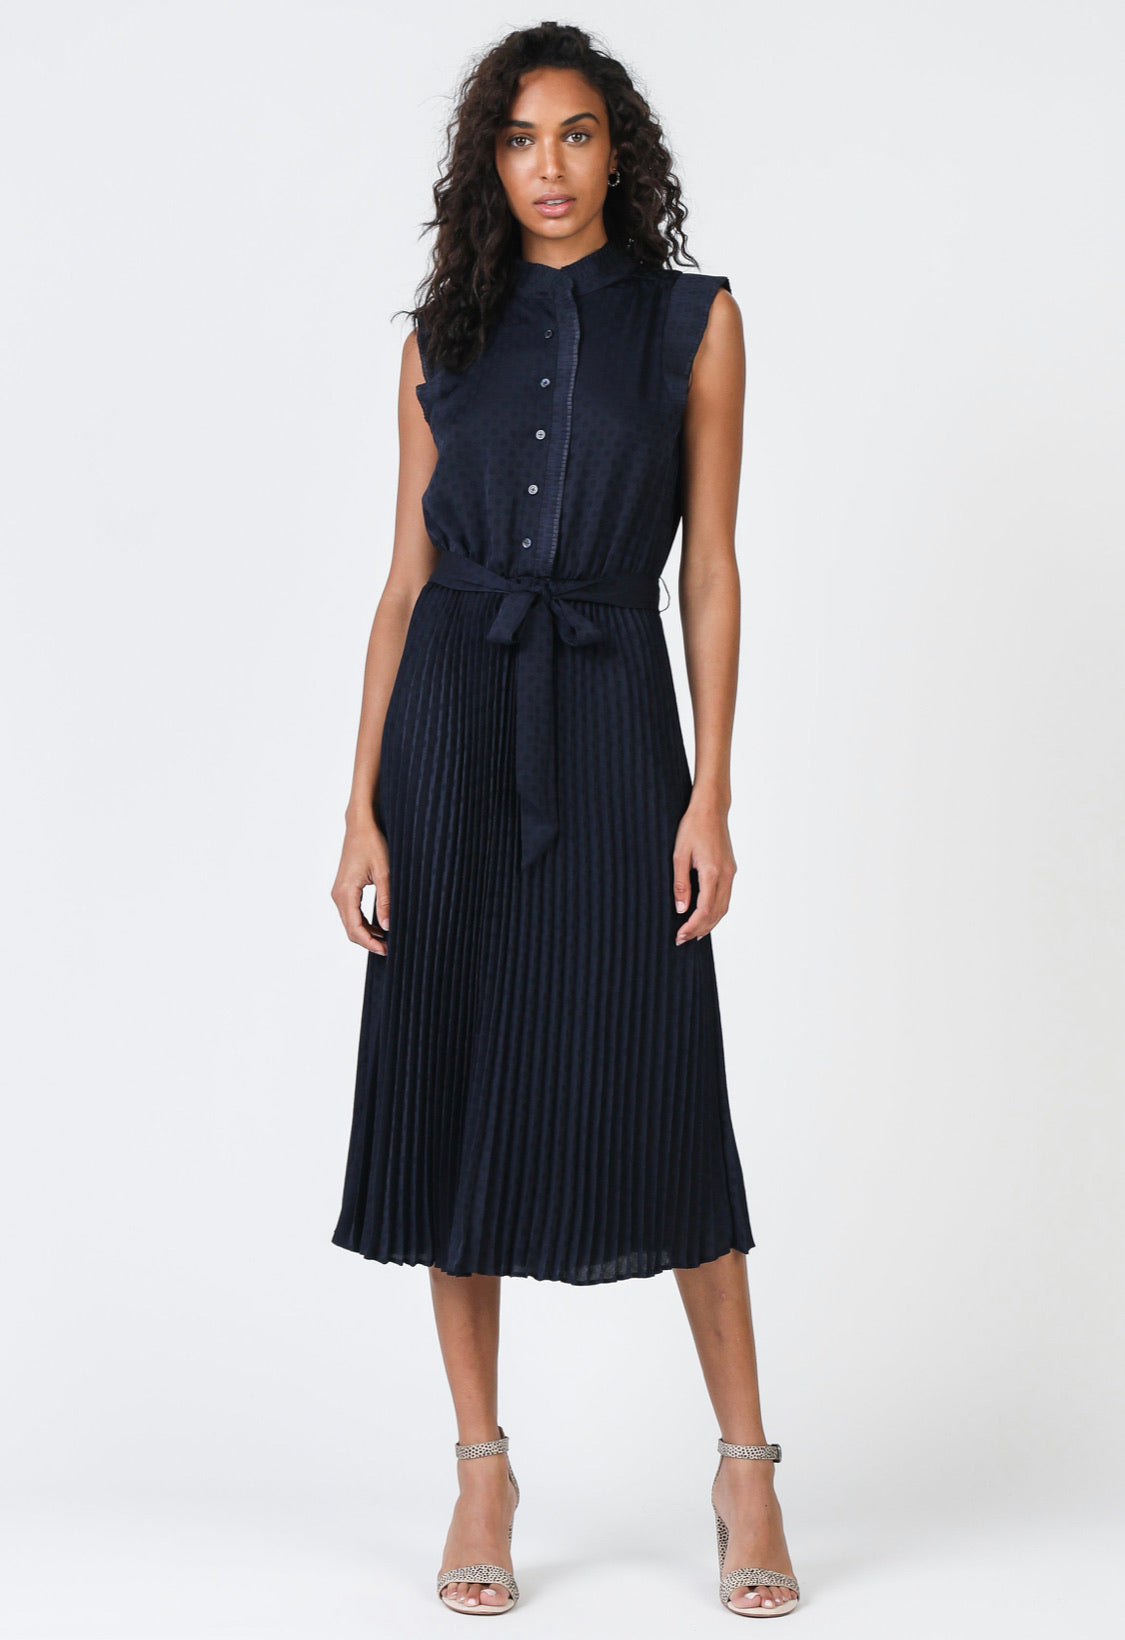 Sleeveless Midi Length Pleated Dress - Navy Dot